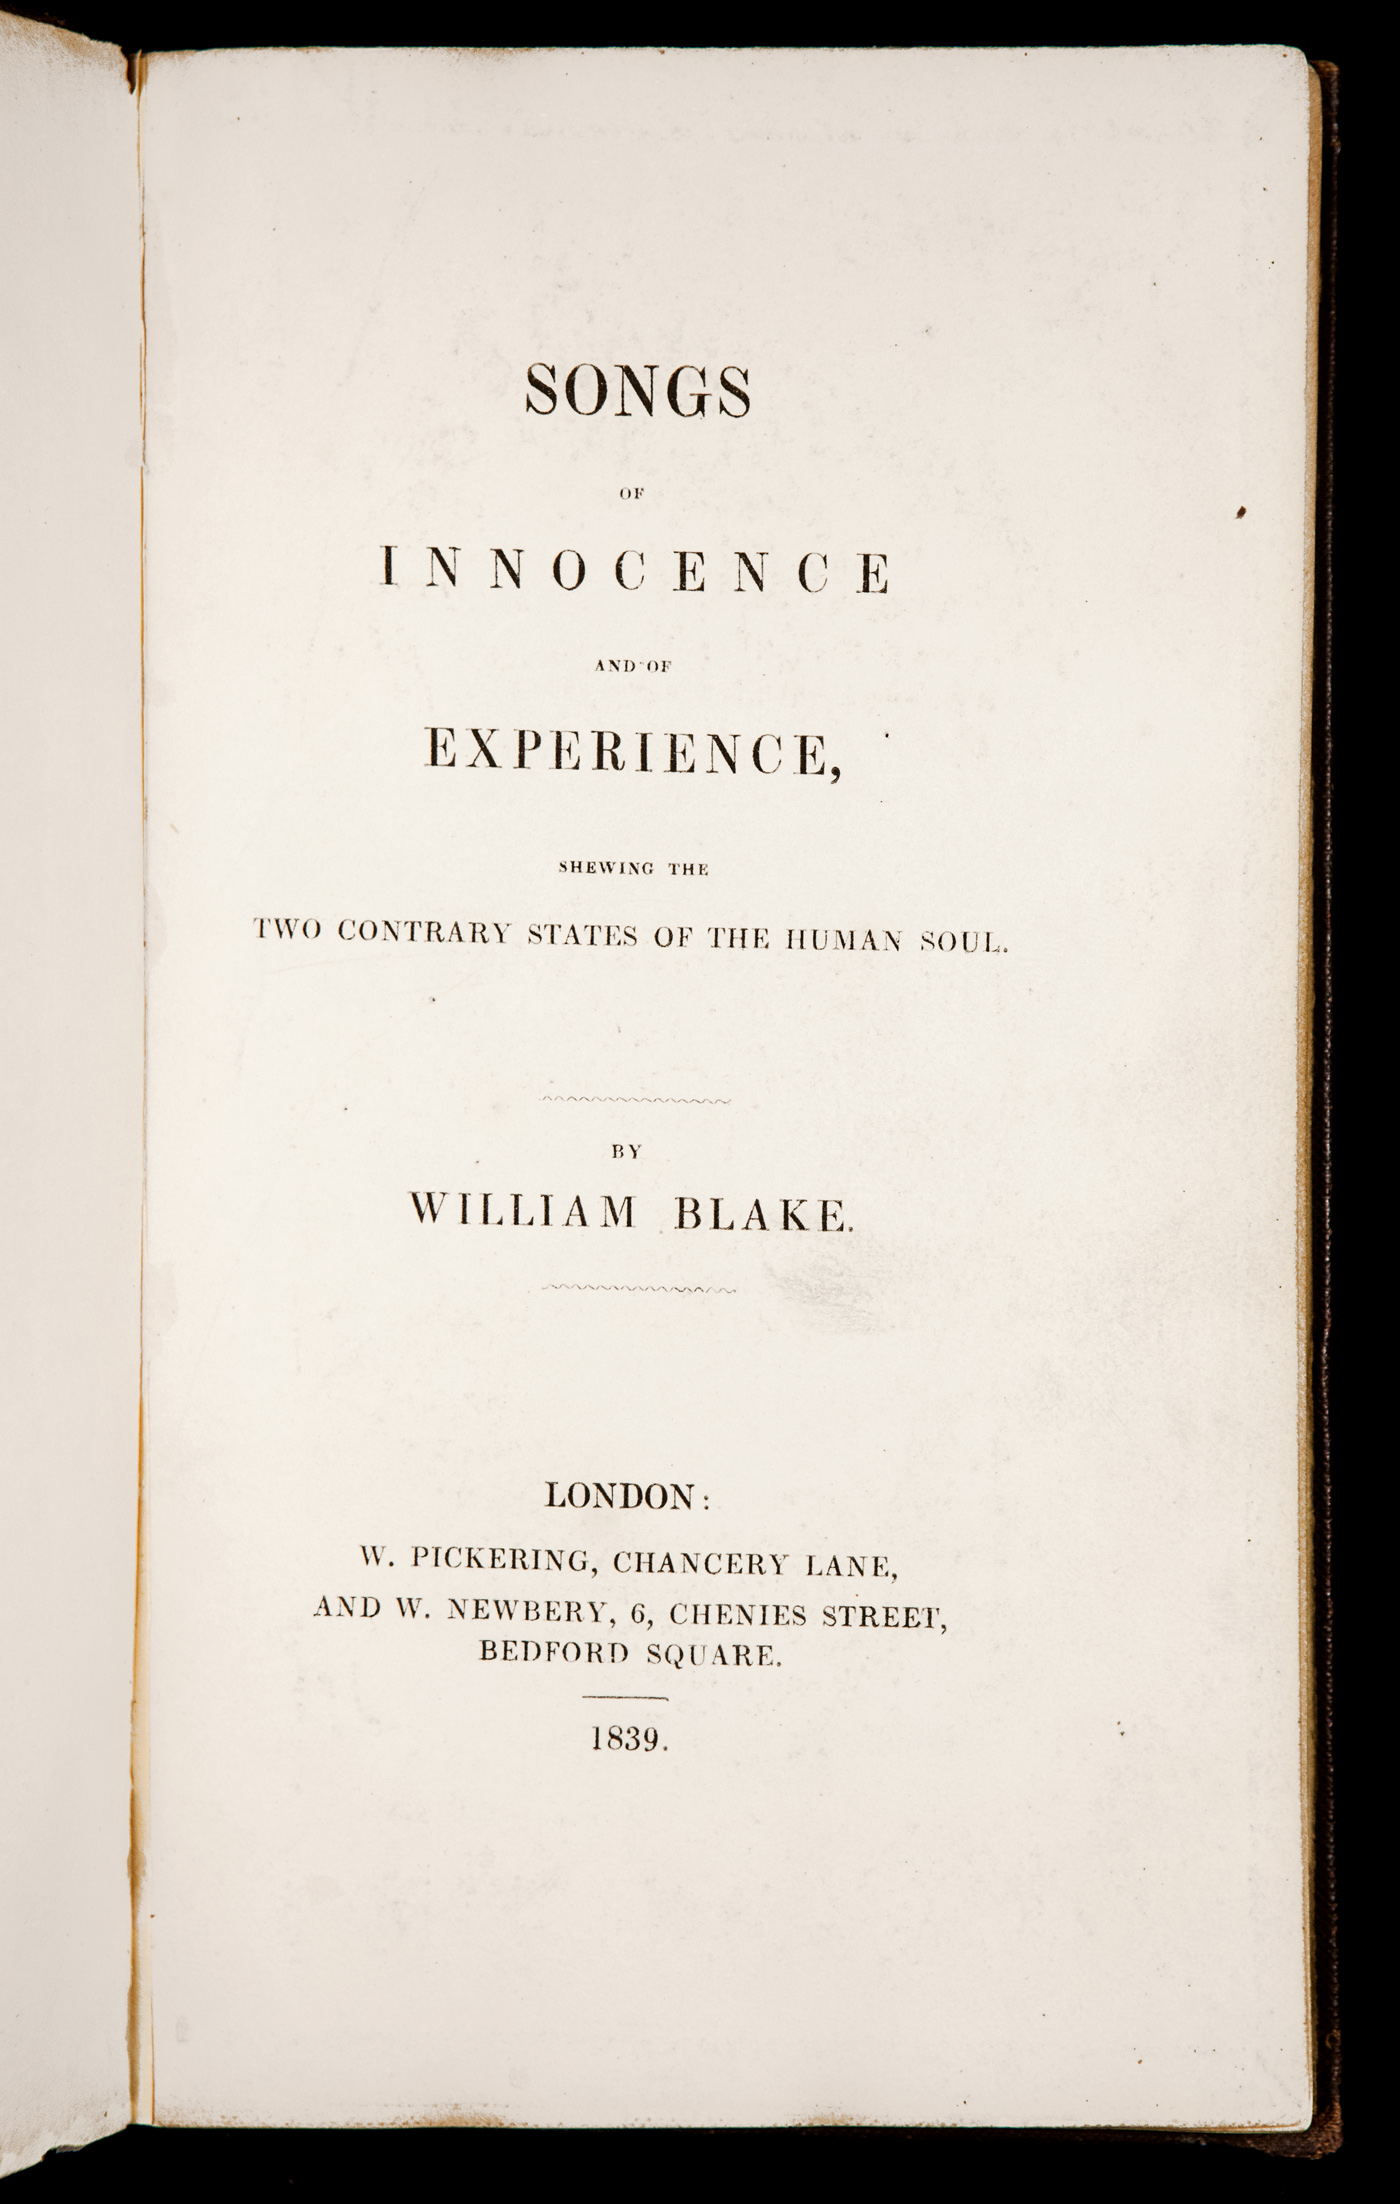 """william blakes the chimney sweeper innocence vs experience William blake's songs of innocence and of experience contain parallel poems that contrast innocence and experience two such poems that share the name """"the chimney sweeper"""" both depict a."""